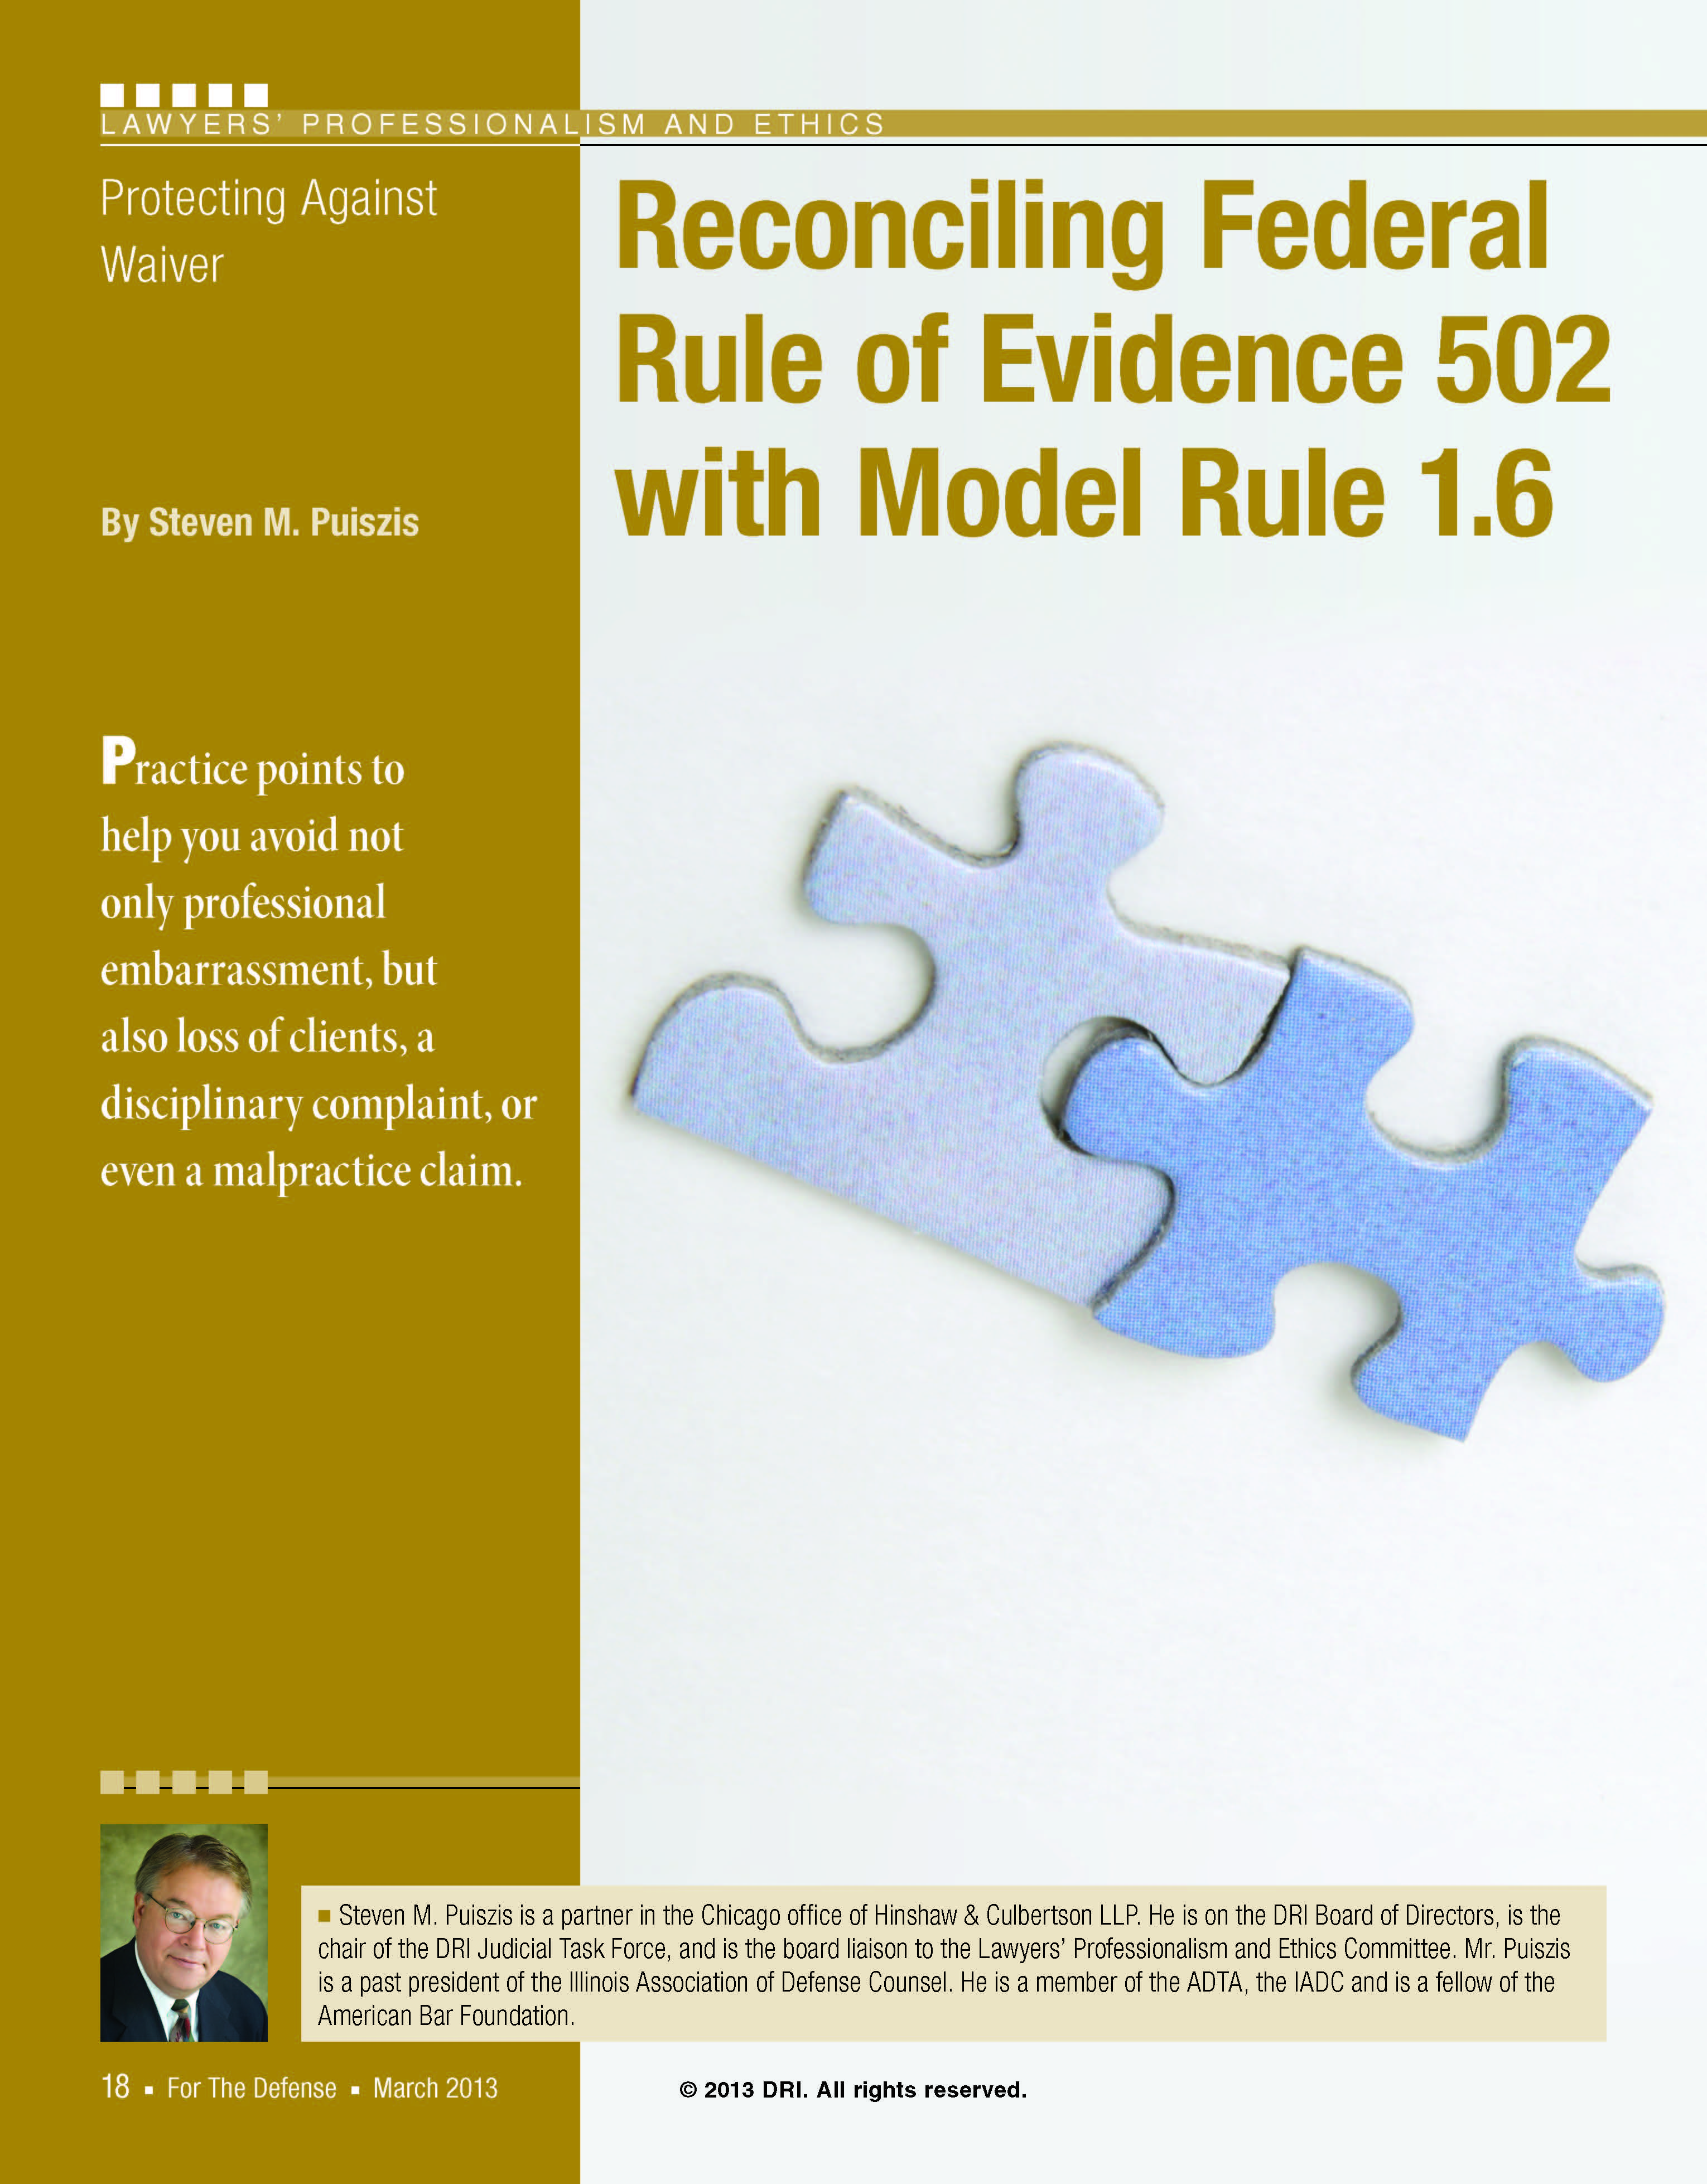 Excellent Dri Article On Duty Of Confidentialty And Fre 502 Waiver